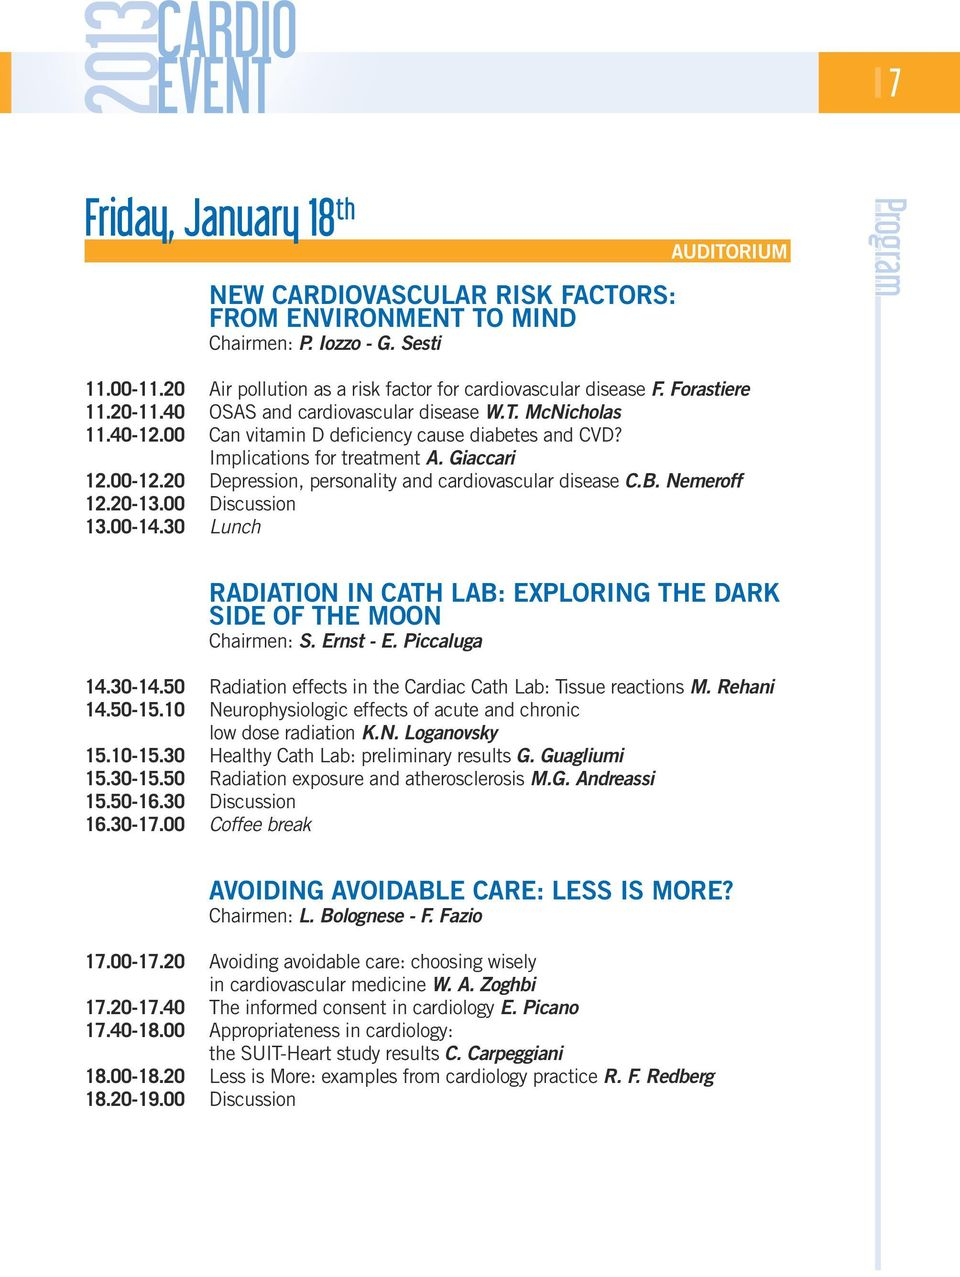 Implications for treatment A. Giaccari 12.00-12.20 Depression, personality and cardiovascular disease C.B. Nemeroff 12.20-13.00 Discussion 13.00-14.